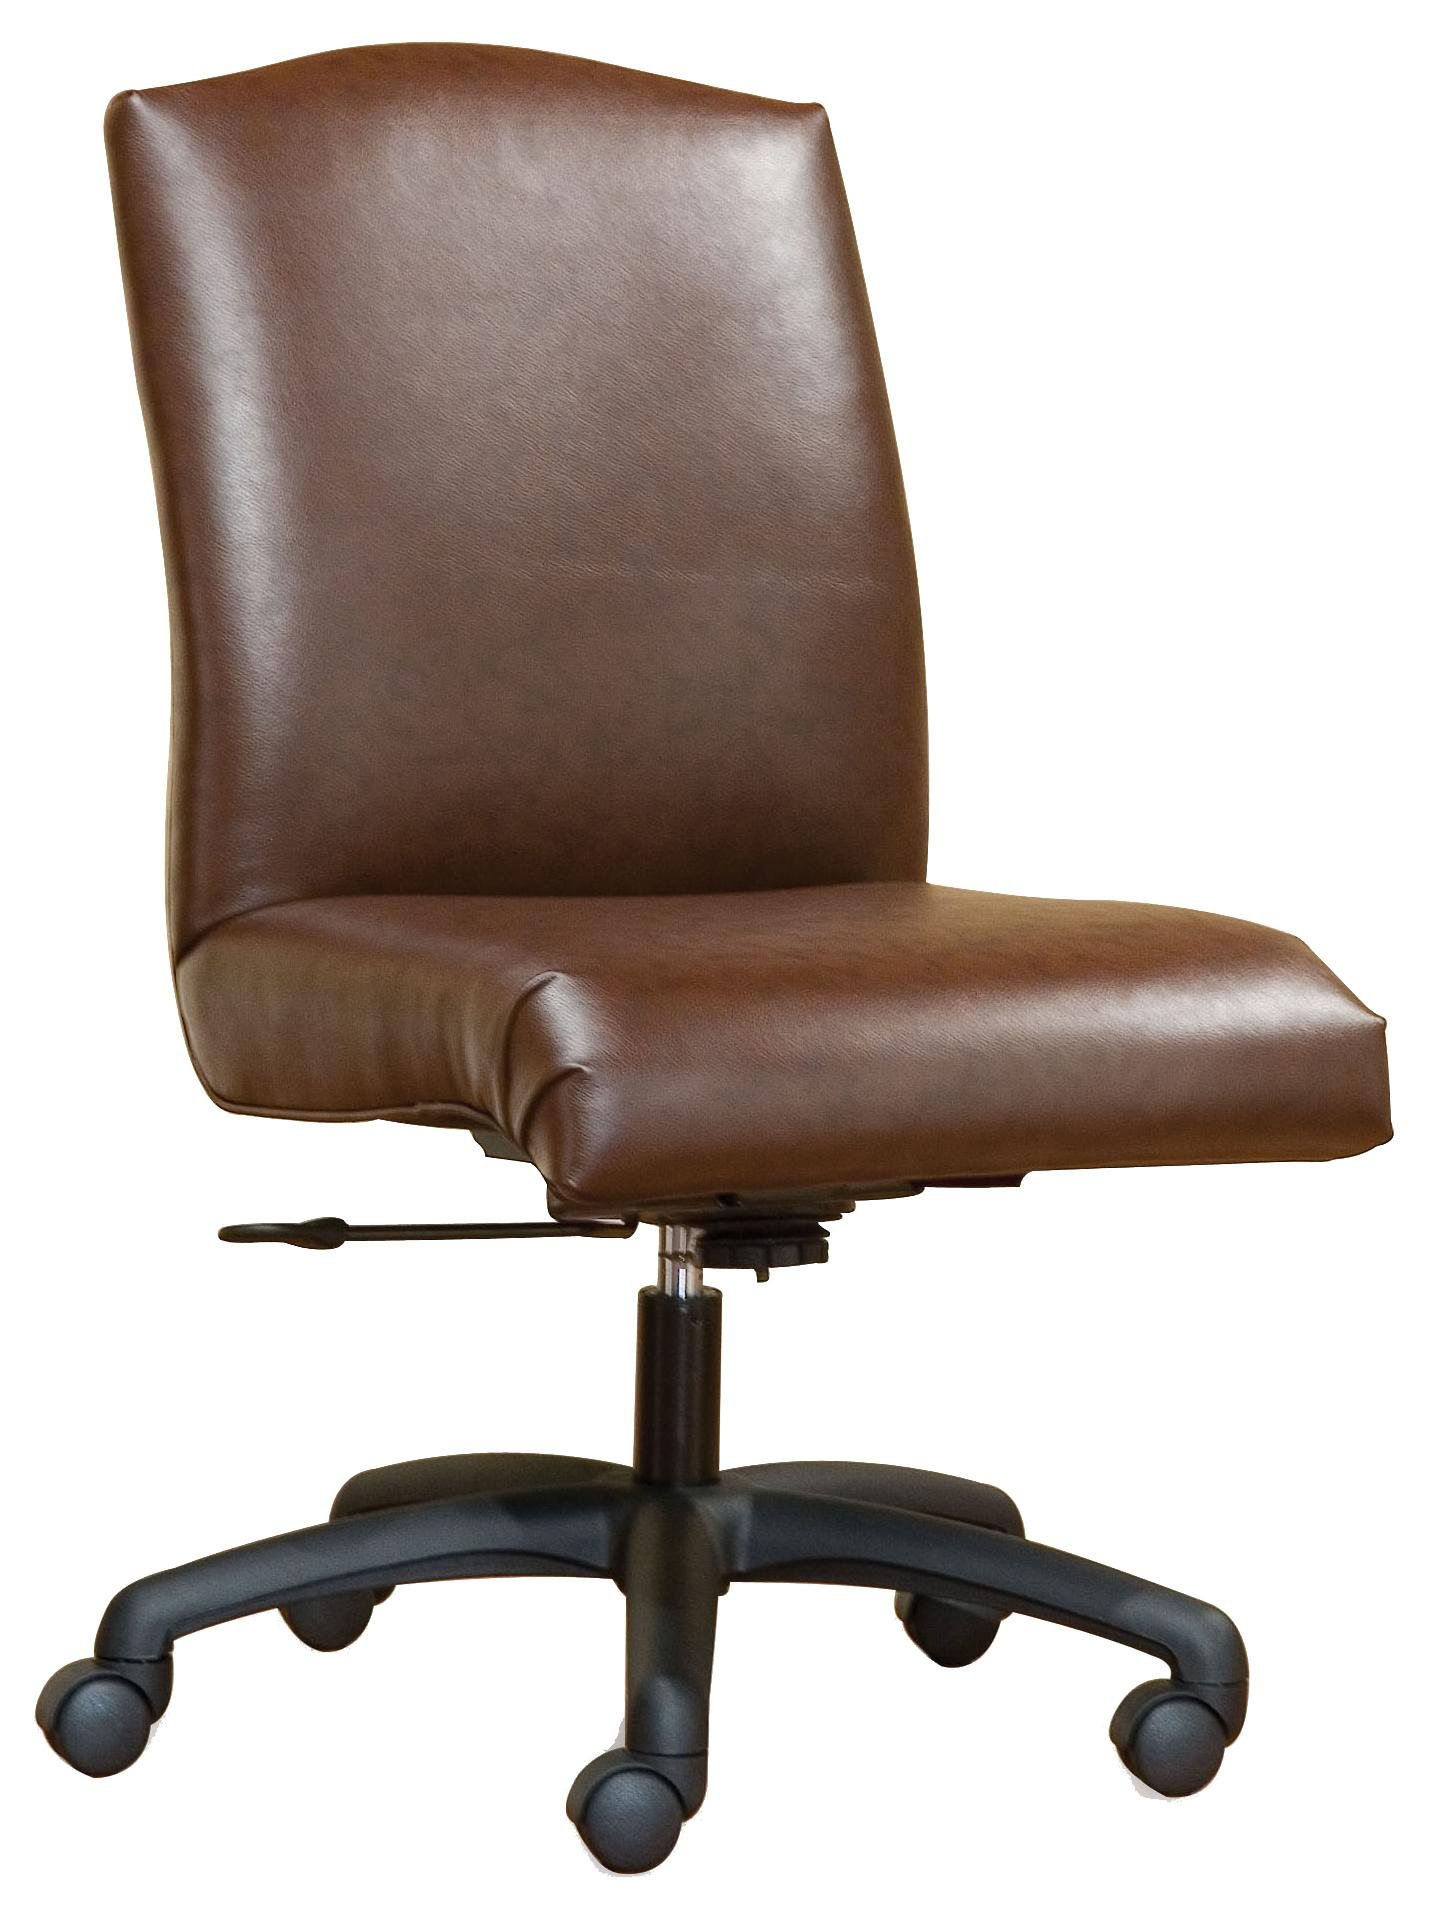 Fairfield Office Furnishings  Armless Swivel Chair - Item Number: 1006-35